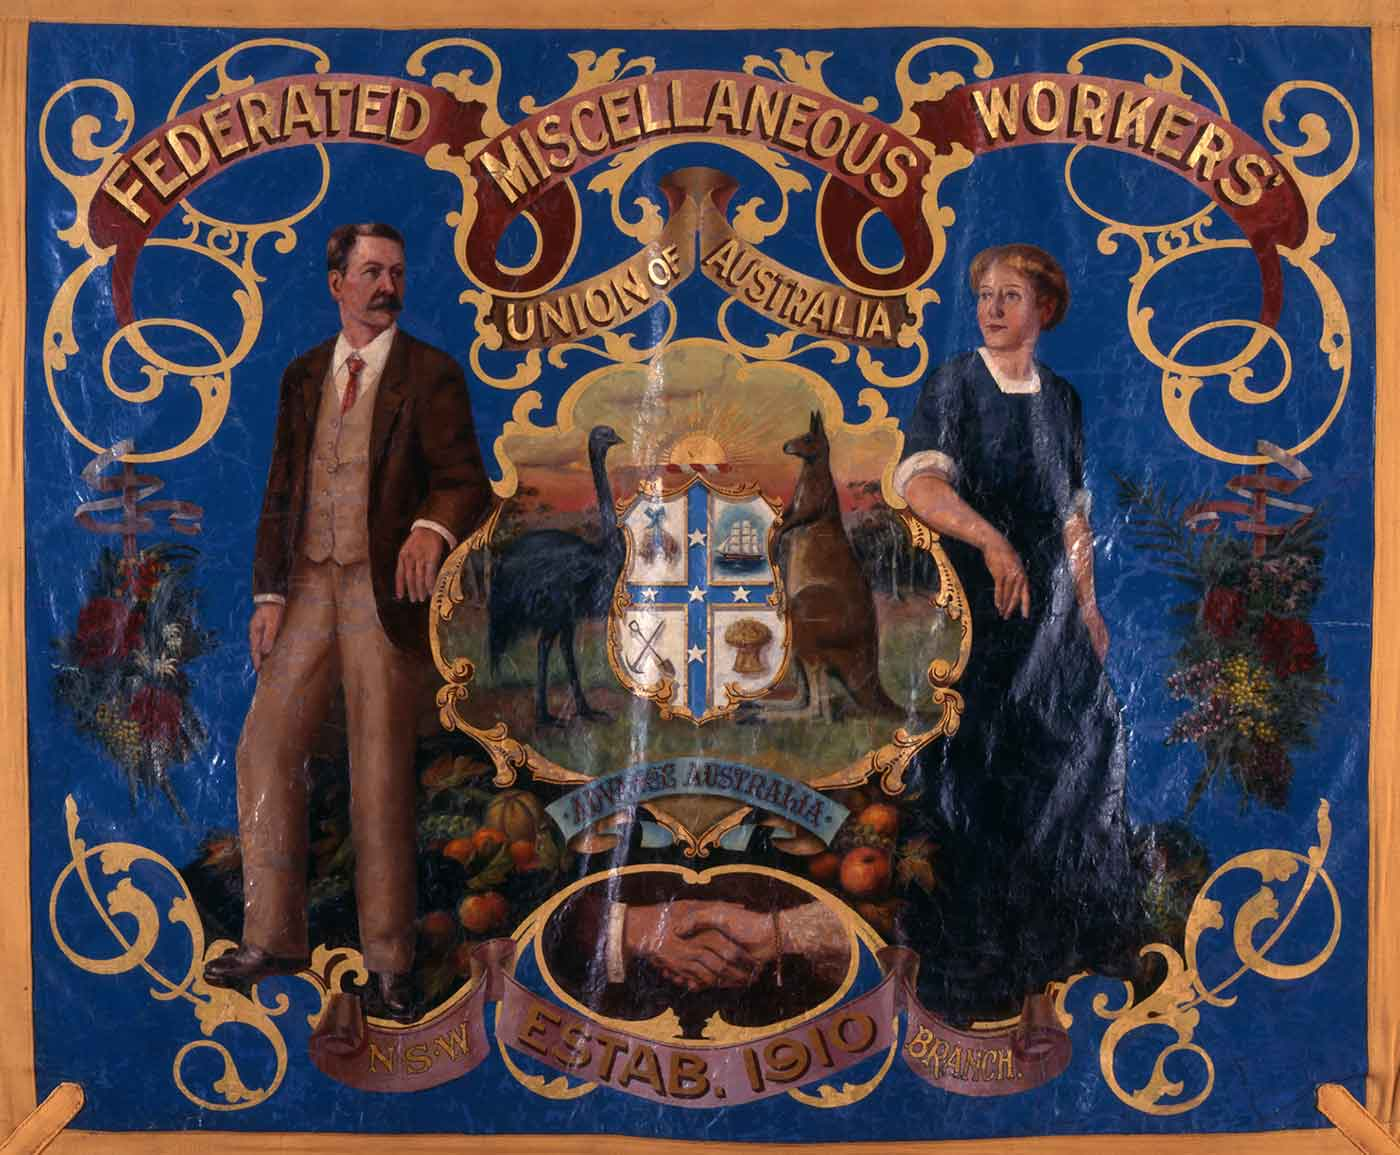 A painted banner with gold fabric border. The banner is painted royal blue with an image of a man and woman leaning on a central image of the coat of arms. 'FEDERATED MISCELLANEOUS WORKERS UNION OF AUSTRALIA' is painted in gold at teh top of the banner.